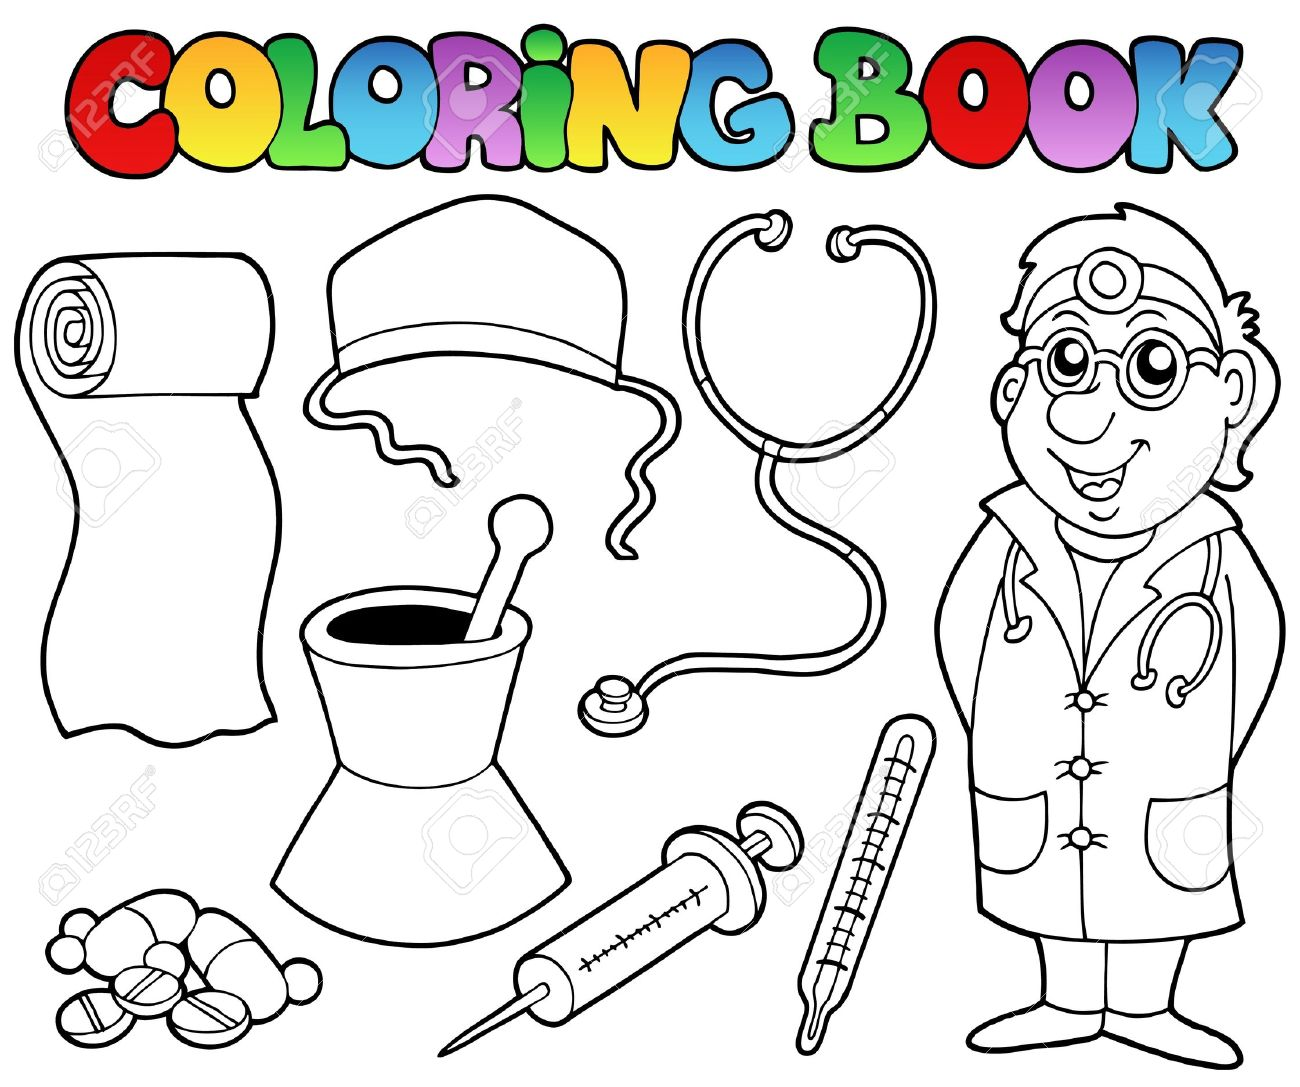 Coloring pages for doctors - Clip Art Medical Coloring Pages Breadedcat Free Printable